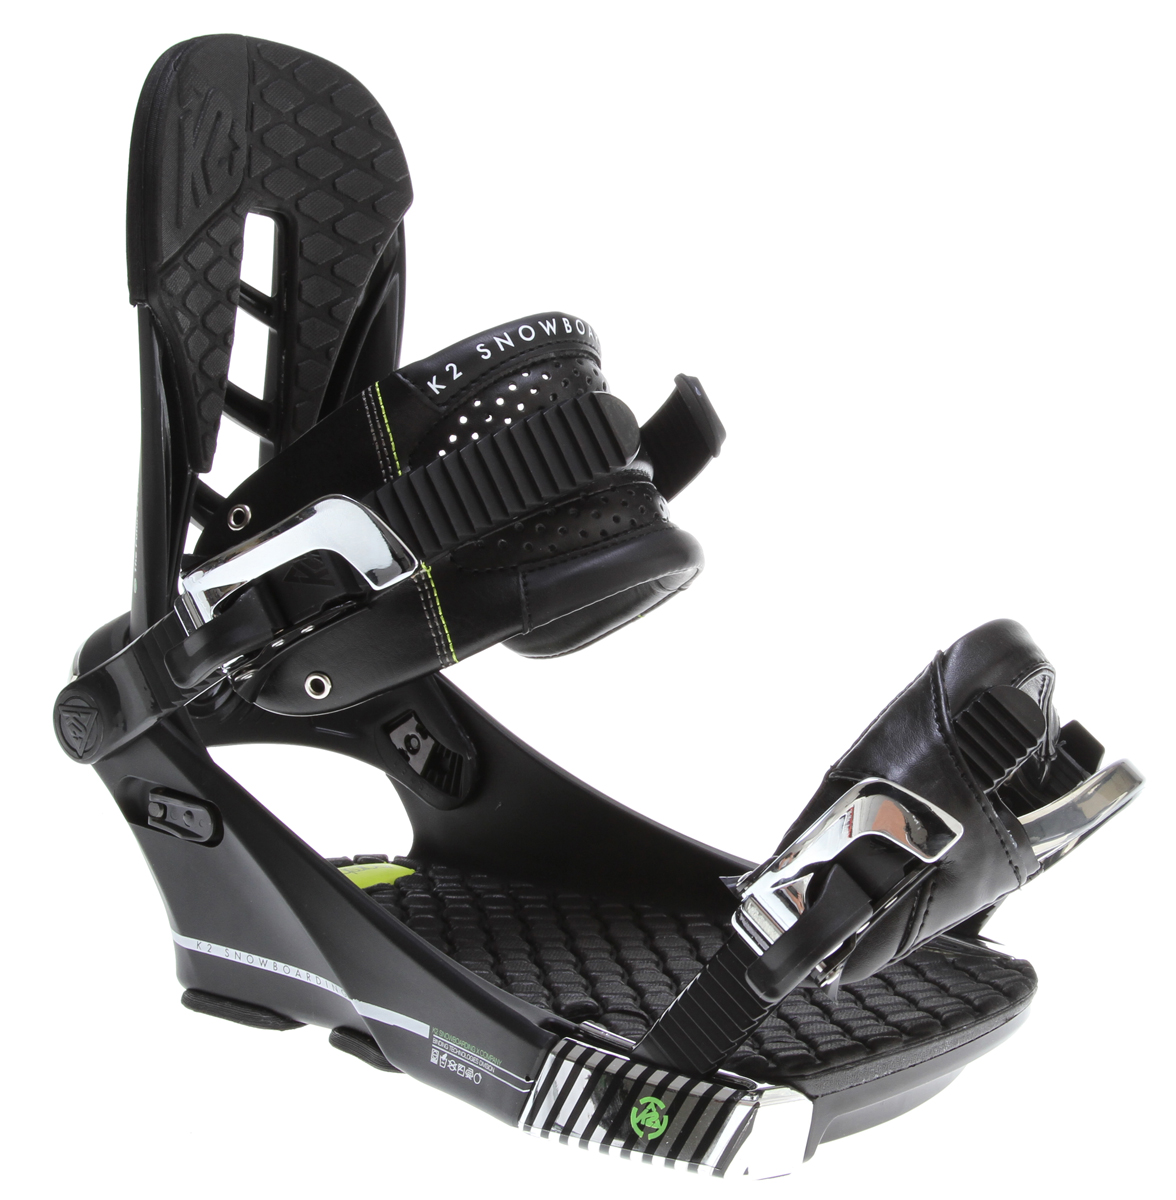 Snowboard SHRED GREED IS GOOD With a solid portfolio of K2s high end technologies, the IPO is no common stock. Harshmellow dampening, paired with the flexible support of Tweakback it a sure thing for any riders long term investment. Key Features of the K2 Company Snowboard Bindings: New! Pro-Fection PC Chassis New! Airlock Tweakback AT Highback Harshmellow Basepad Canted Footbeds Chassis: New! Pro-Fection PC Highback: Airlock Tweakback AT Highback Ankle strap: Thin Cored Caddi Strap Features: Hinge Mount & NEW Cam-Lock Centering Toe Strap: EZ-Set Ratchet: Aluminum Litespeed & EZ Feed Housing Disc: Mulit-Compatible & Offset discs Footbed: Canted Seamless EVA, Harshmellow Shockpads, Tool-Less Adjust Power Ramp - $174.95